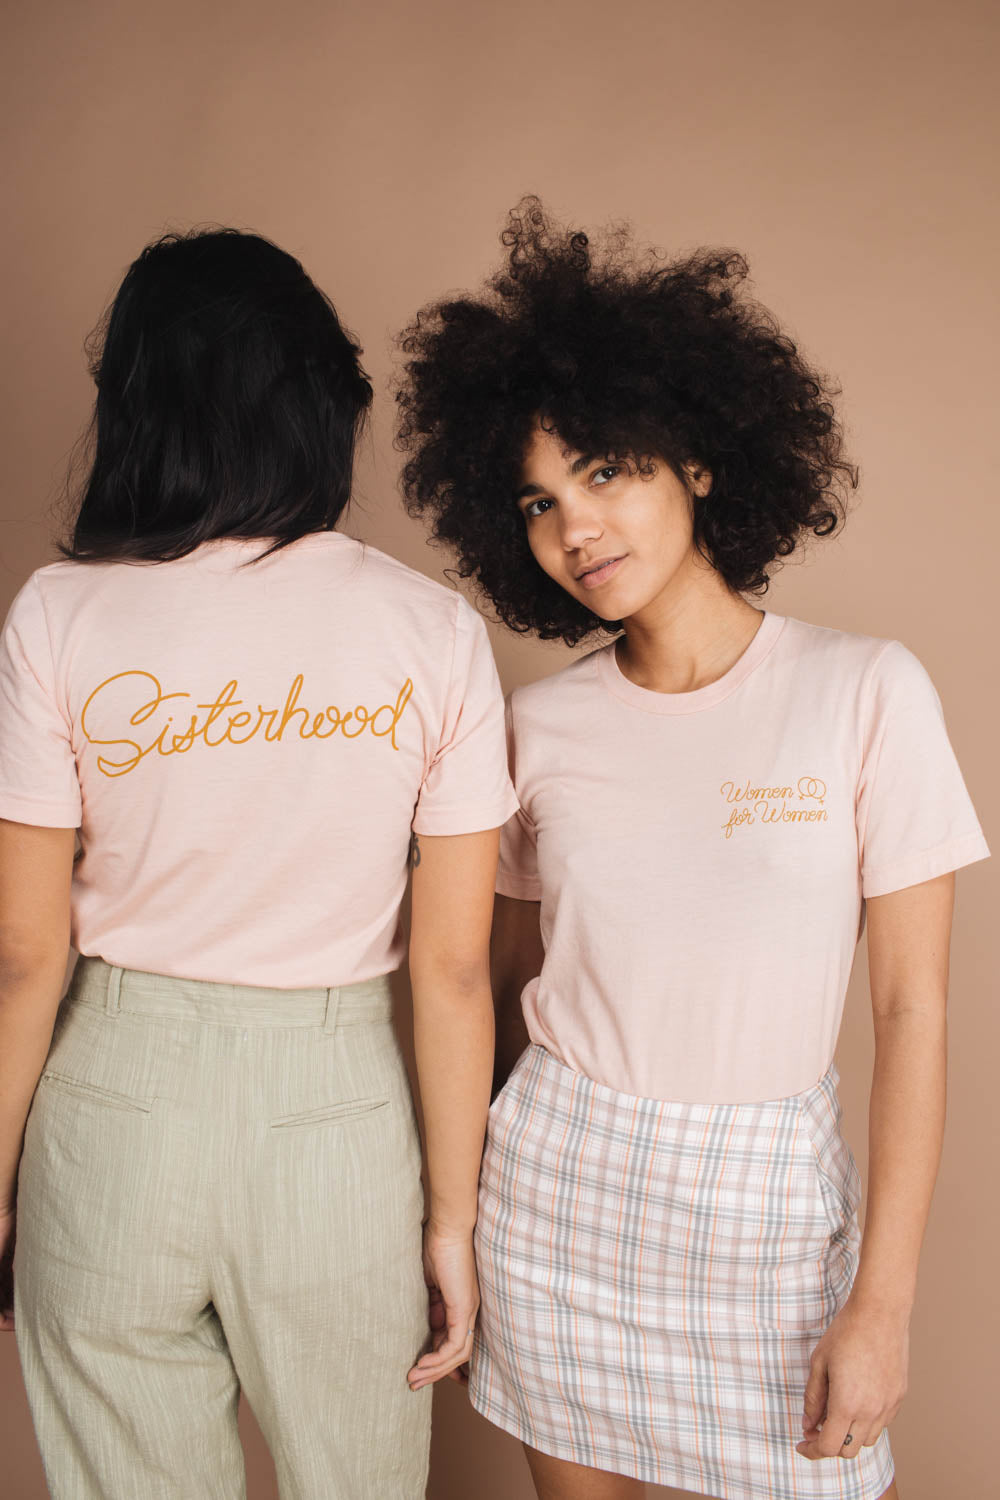 Women for Women + Sisterhood | Unisex